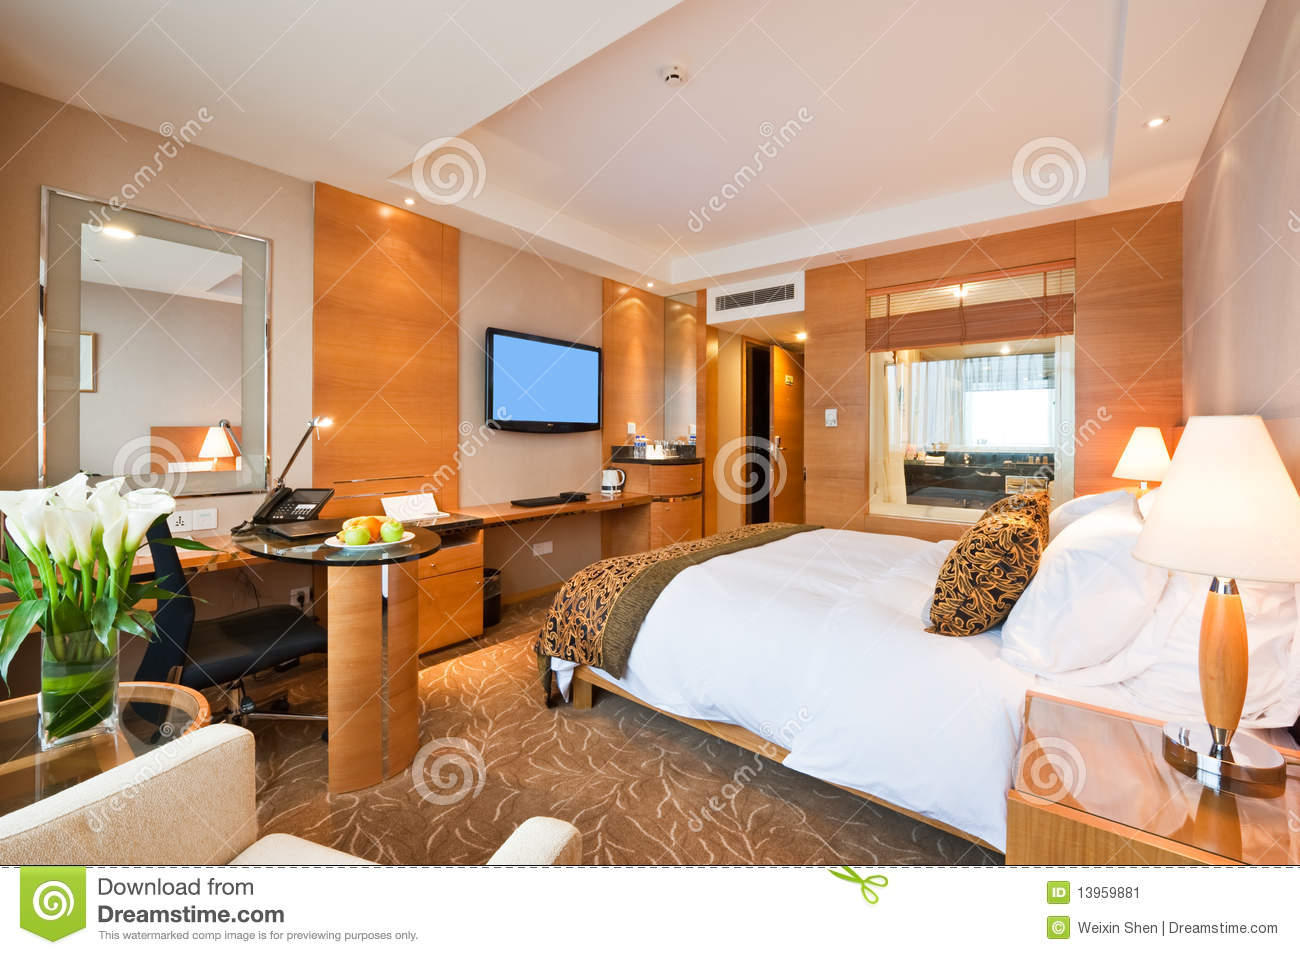 Tablet Wandhalterung Selber Bauen Deluxe Single Room In Hotel Stock Image Image 13959881